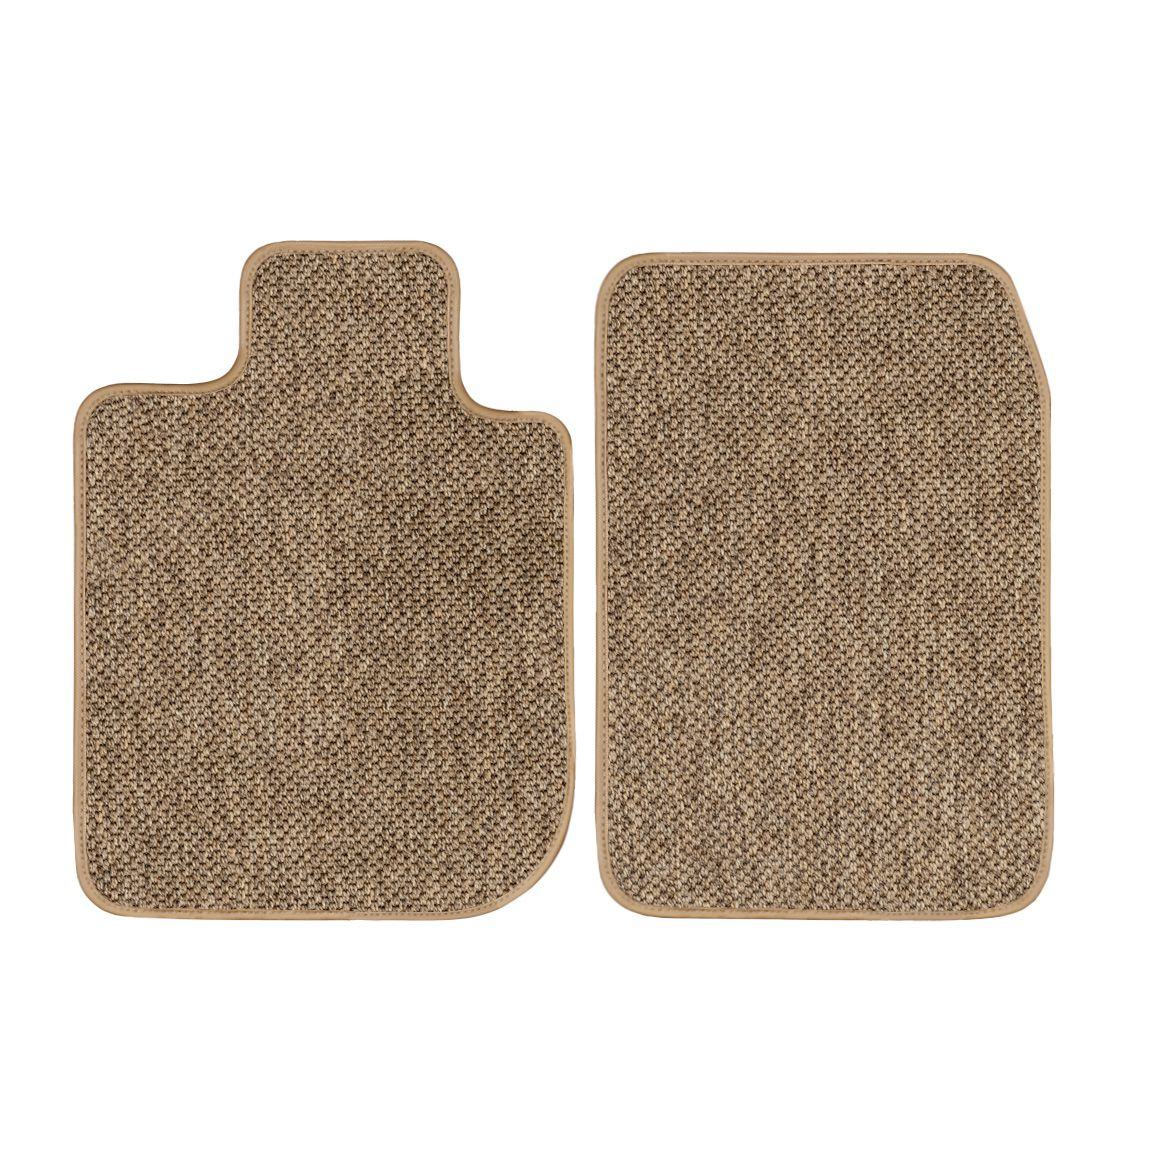 All Weather Textile Car Mats from GG Bailey are custom fit to your car